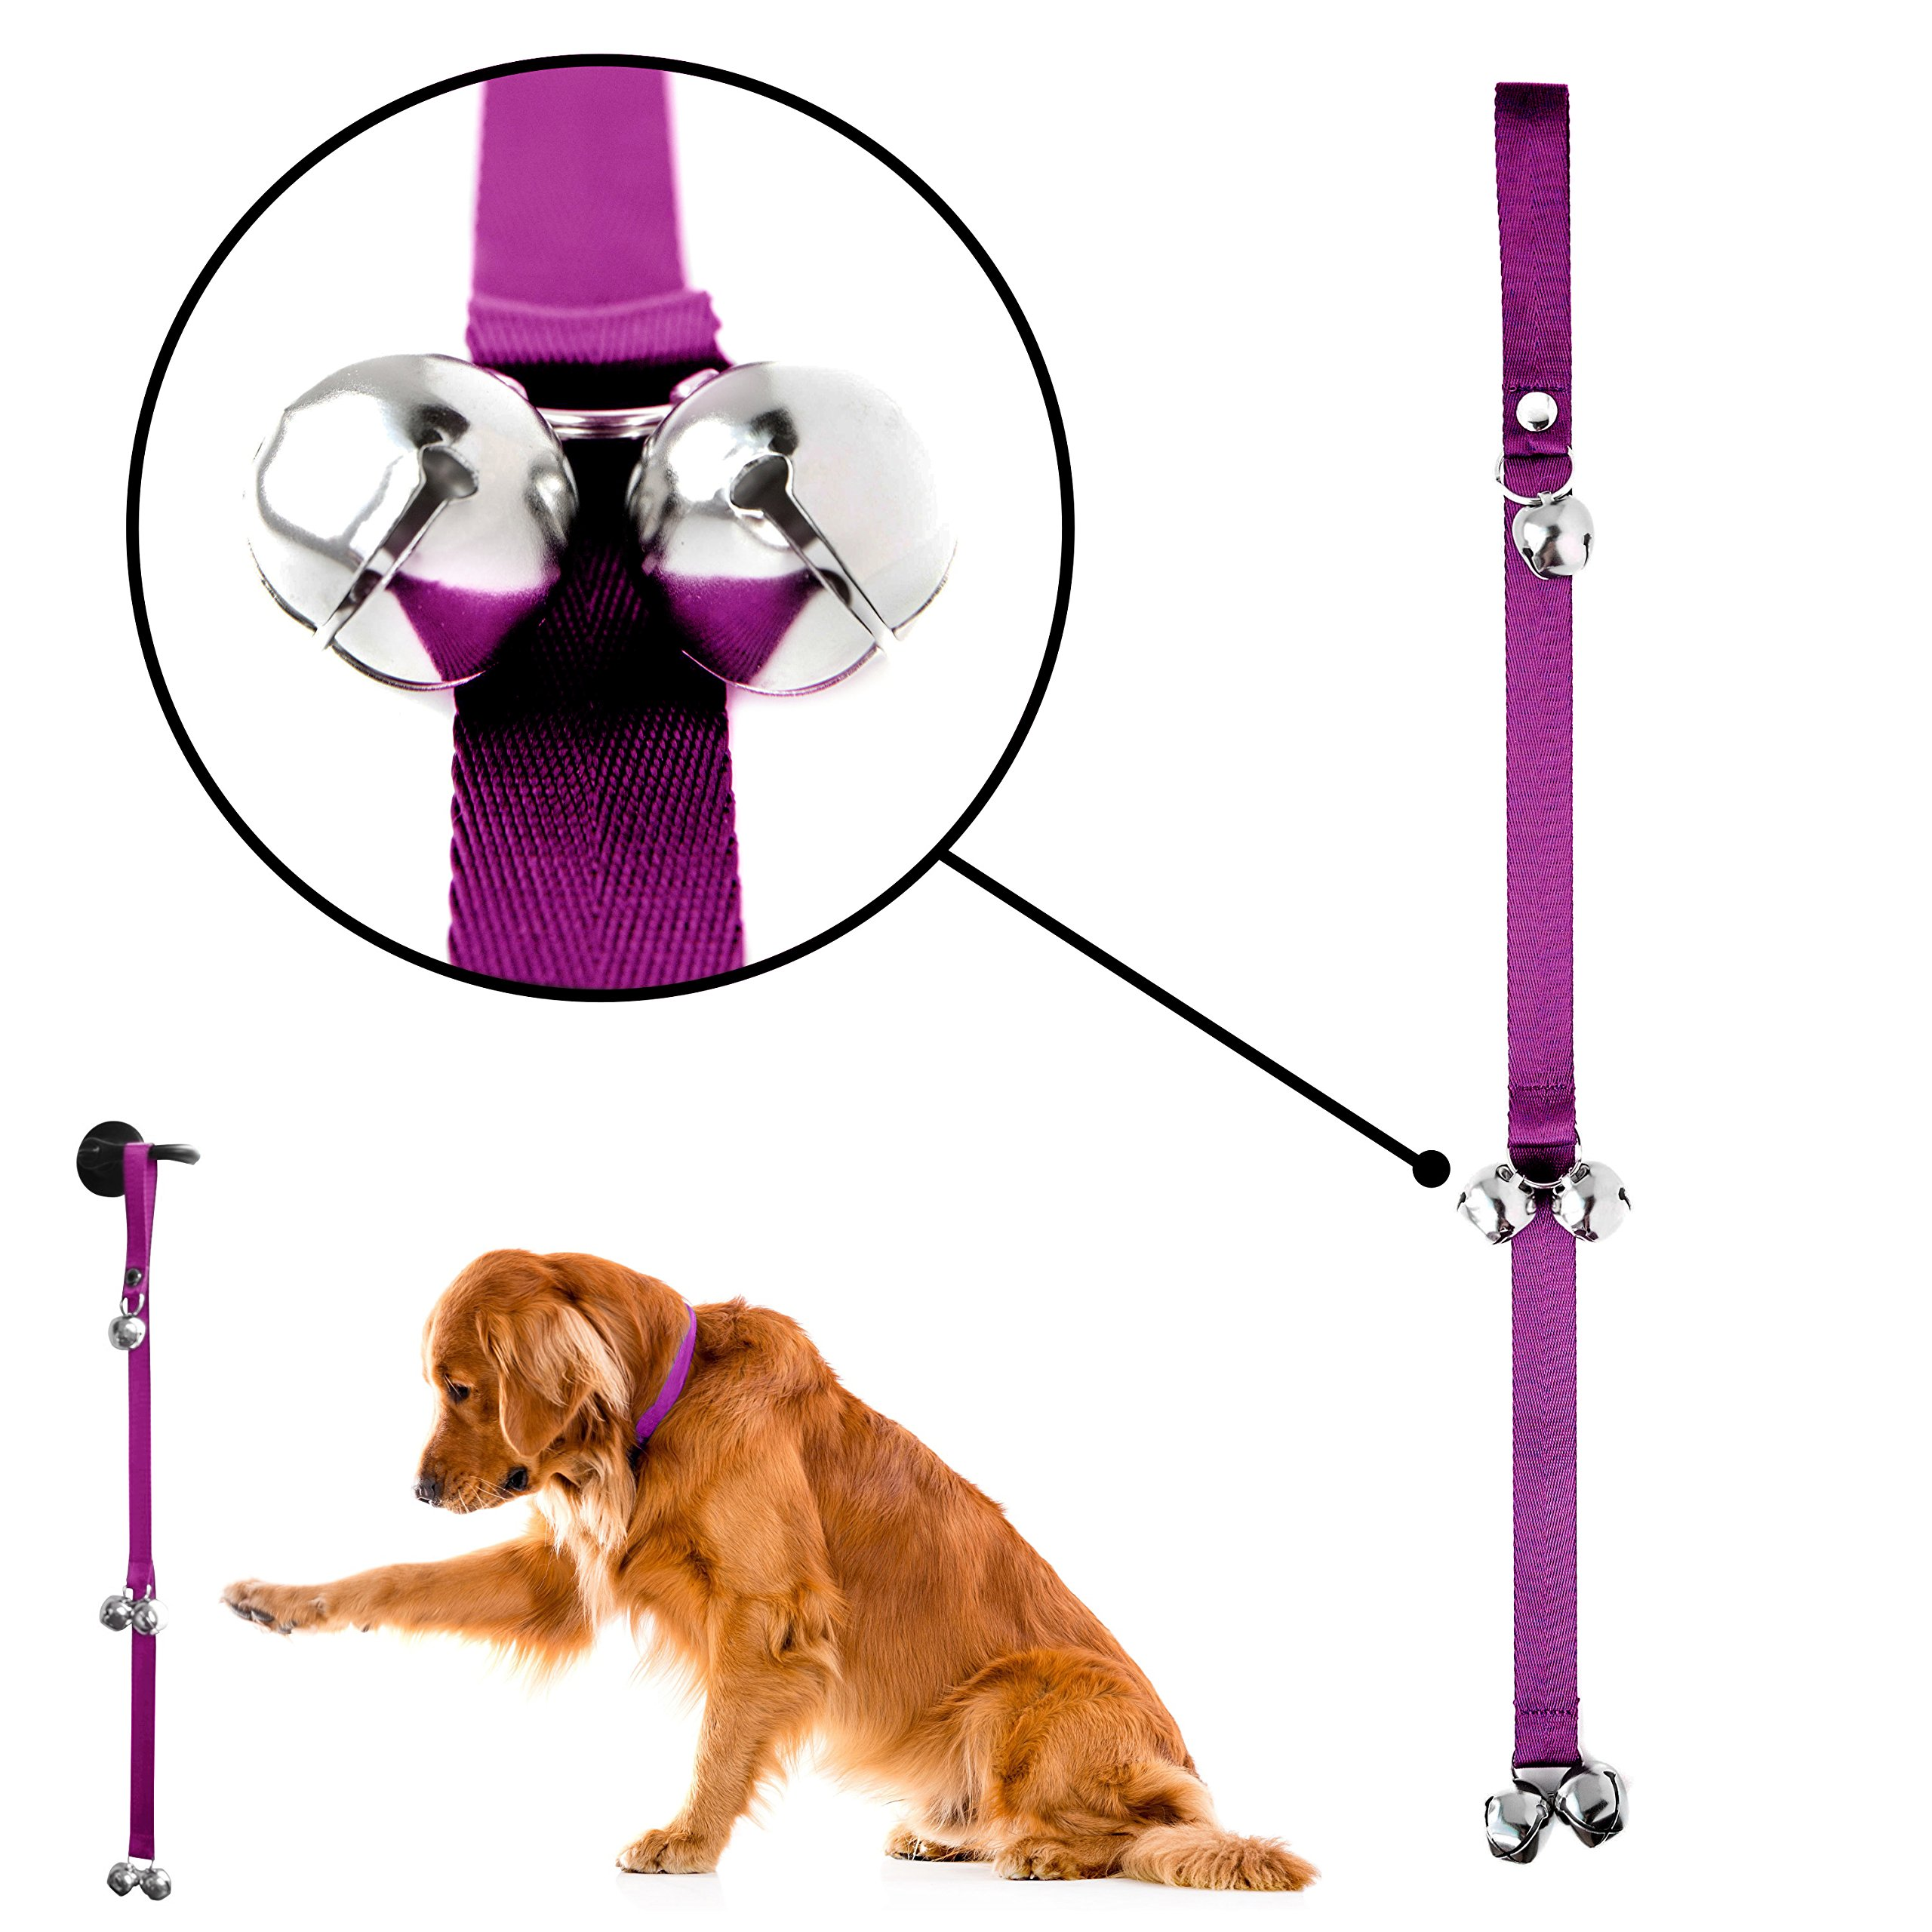 Mighty Paw Tinkle Bells Premium Quality Dog Training Bells - Pink